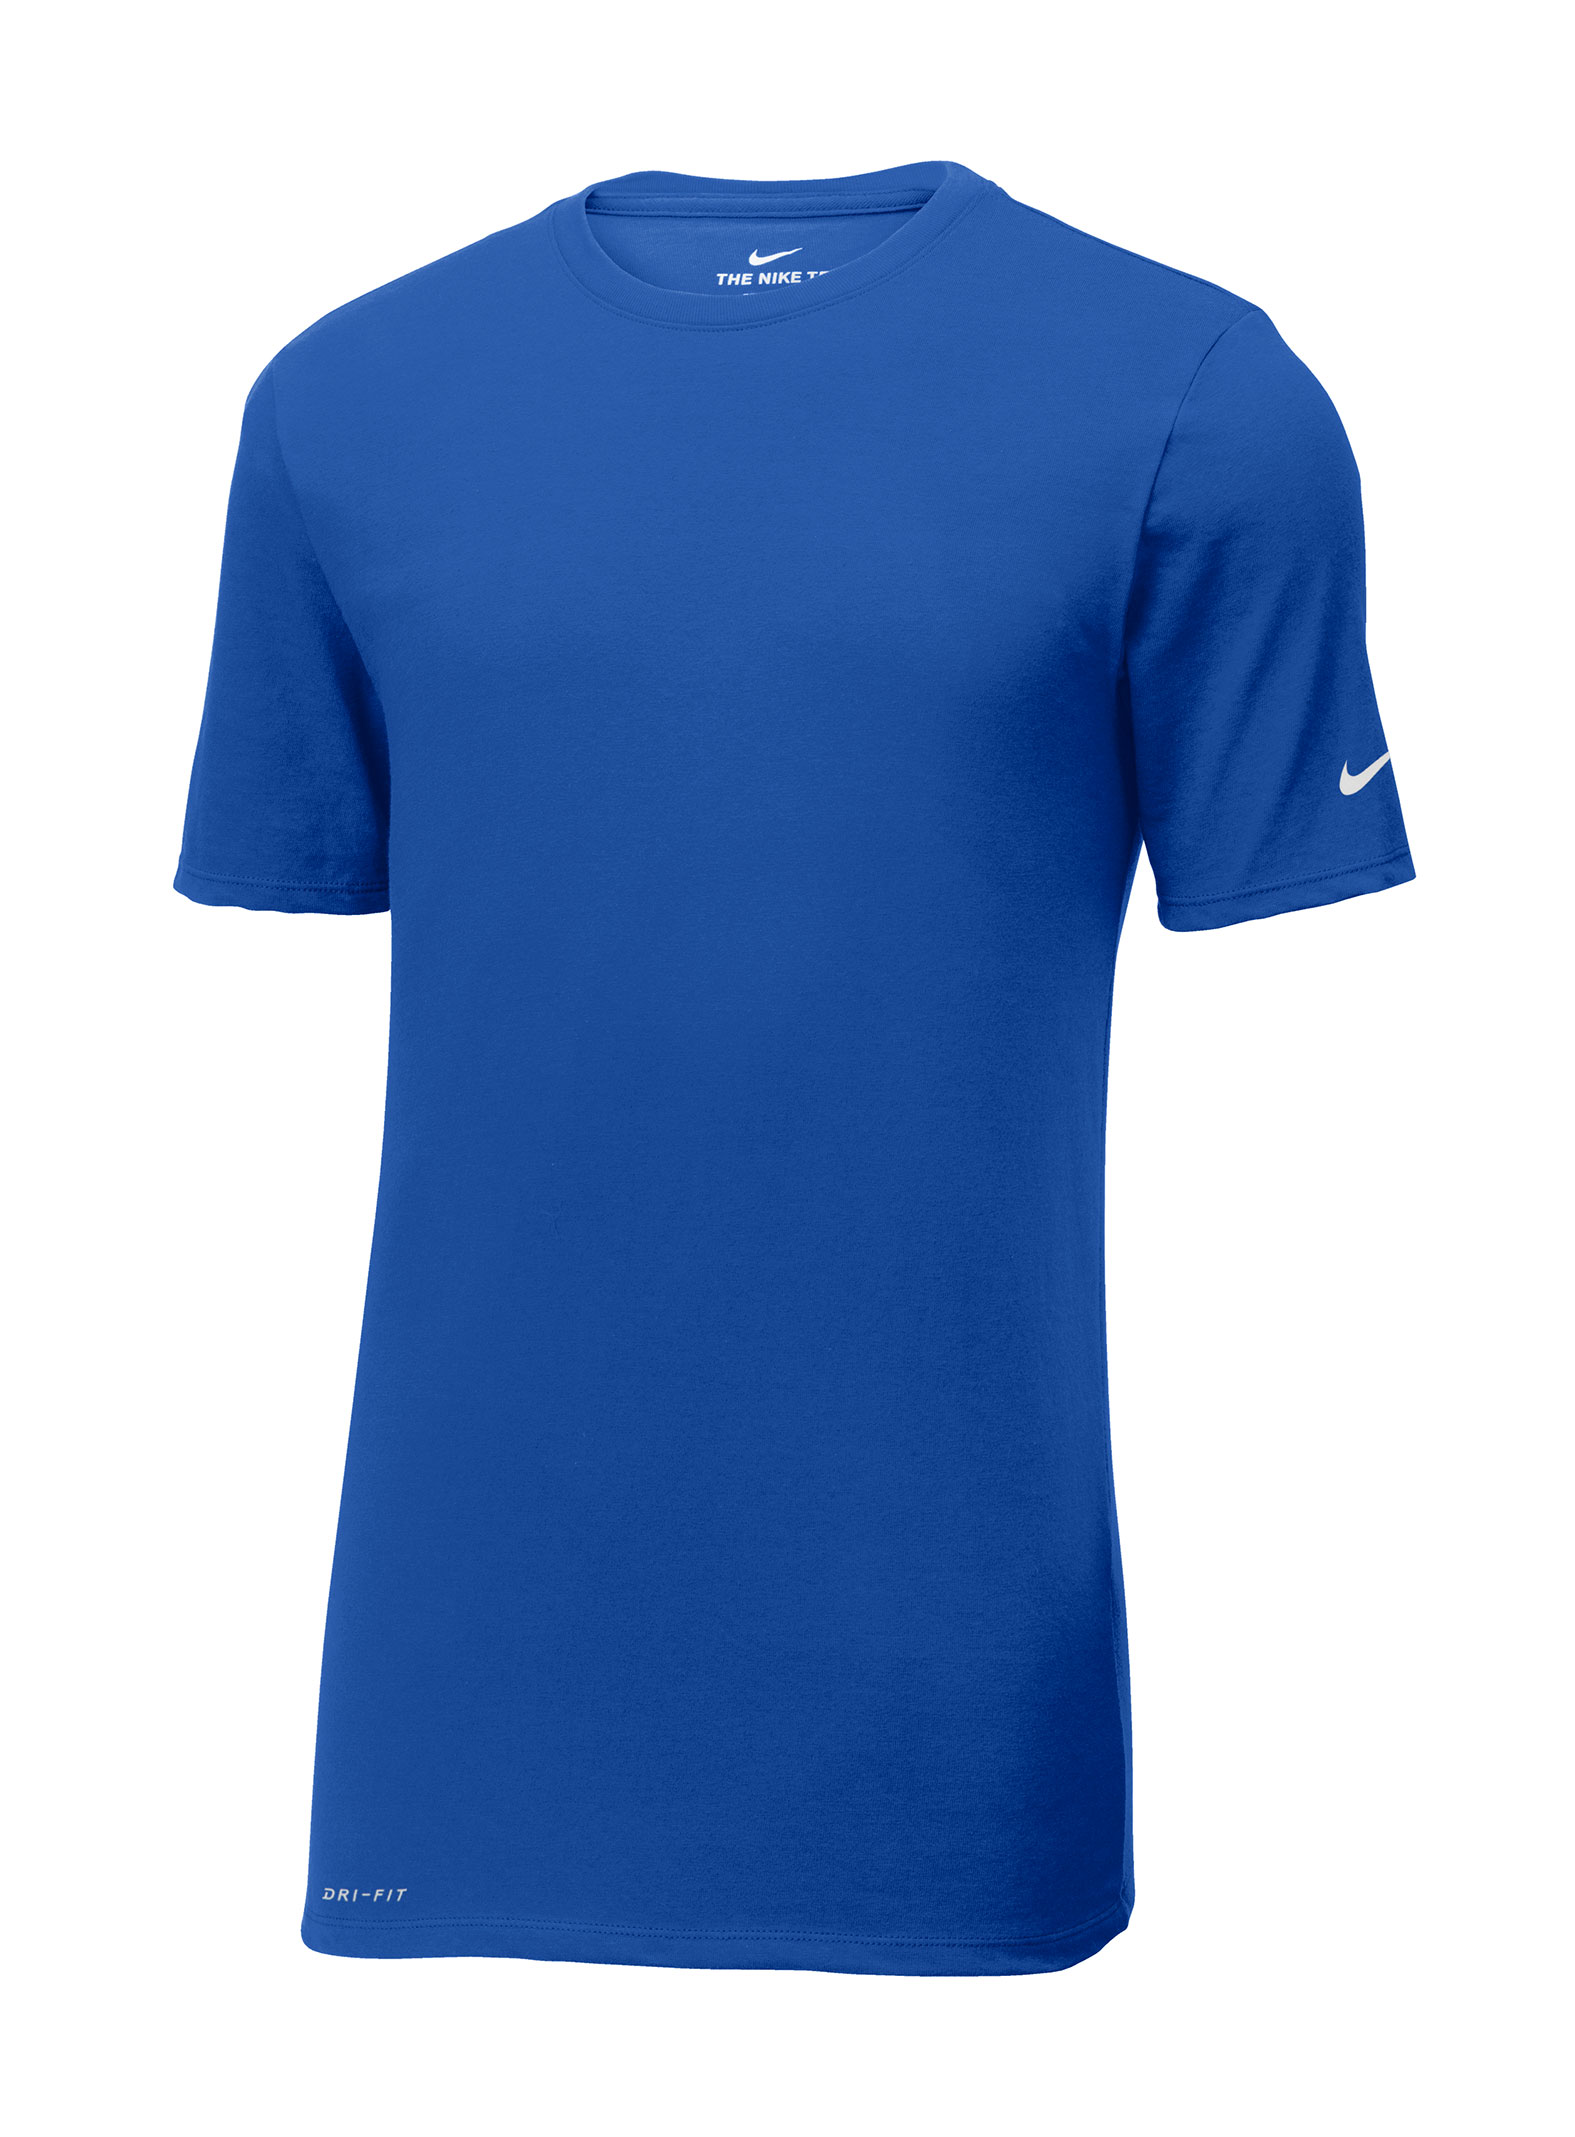 Nike Mens Dri-FIT Cotton/Poly Tee